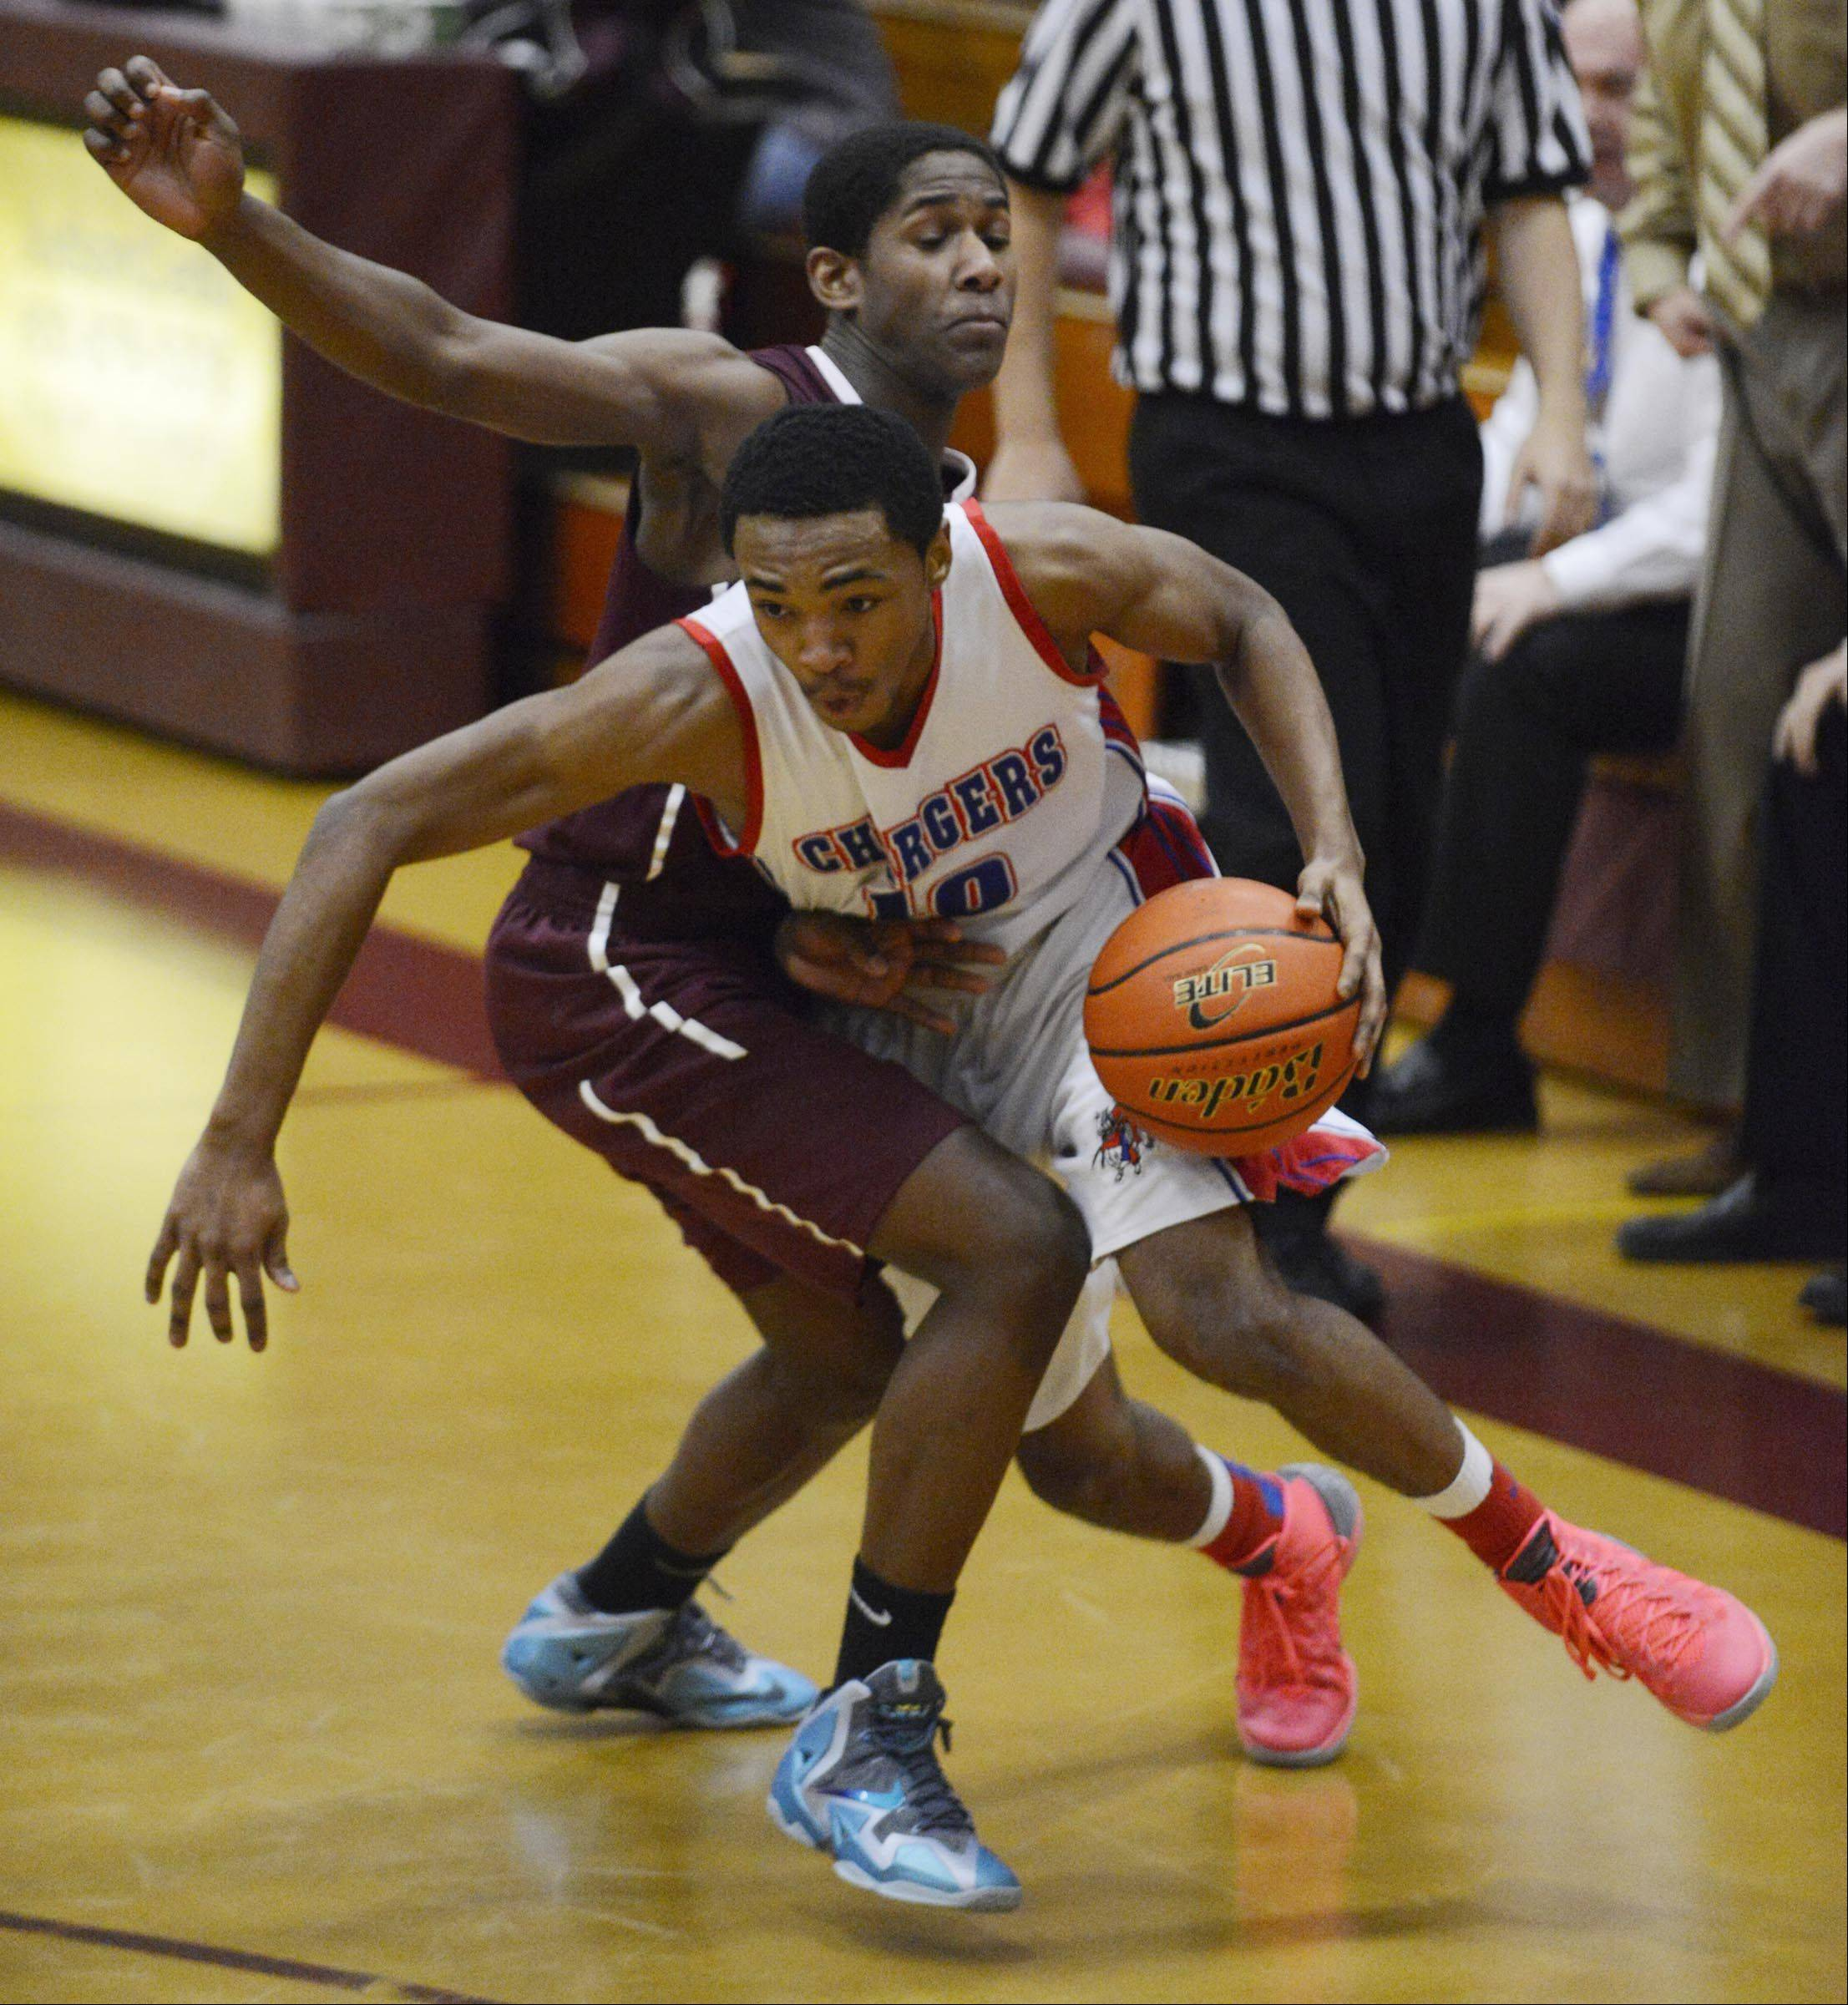 Images from the Elgin vs. Dundee-Crown boys basketball game Thursday, December 26, 2013.